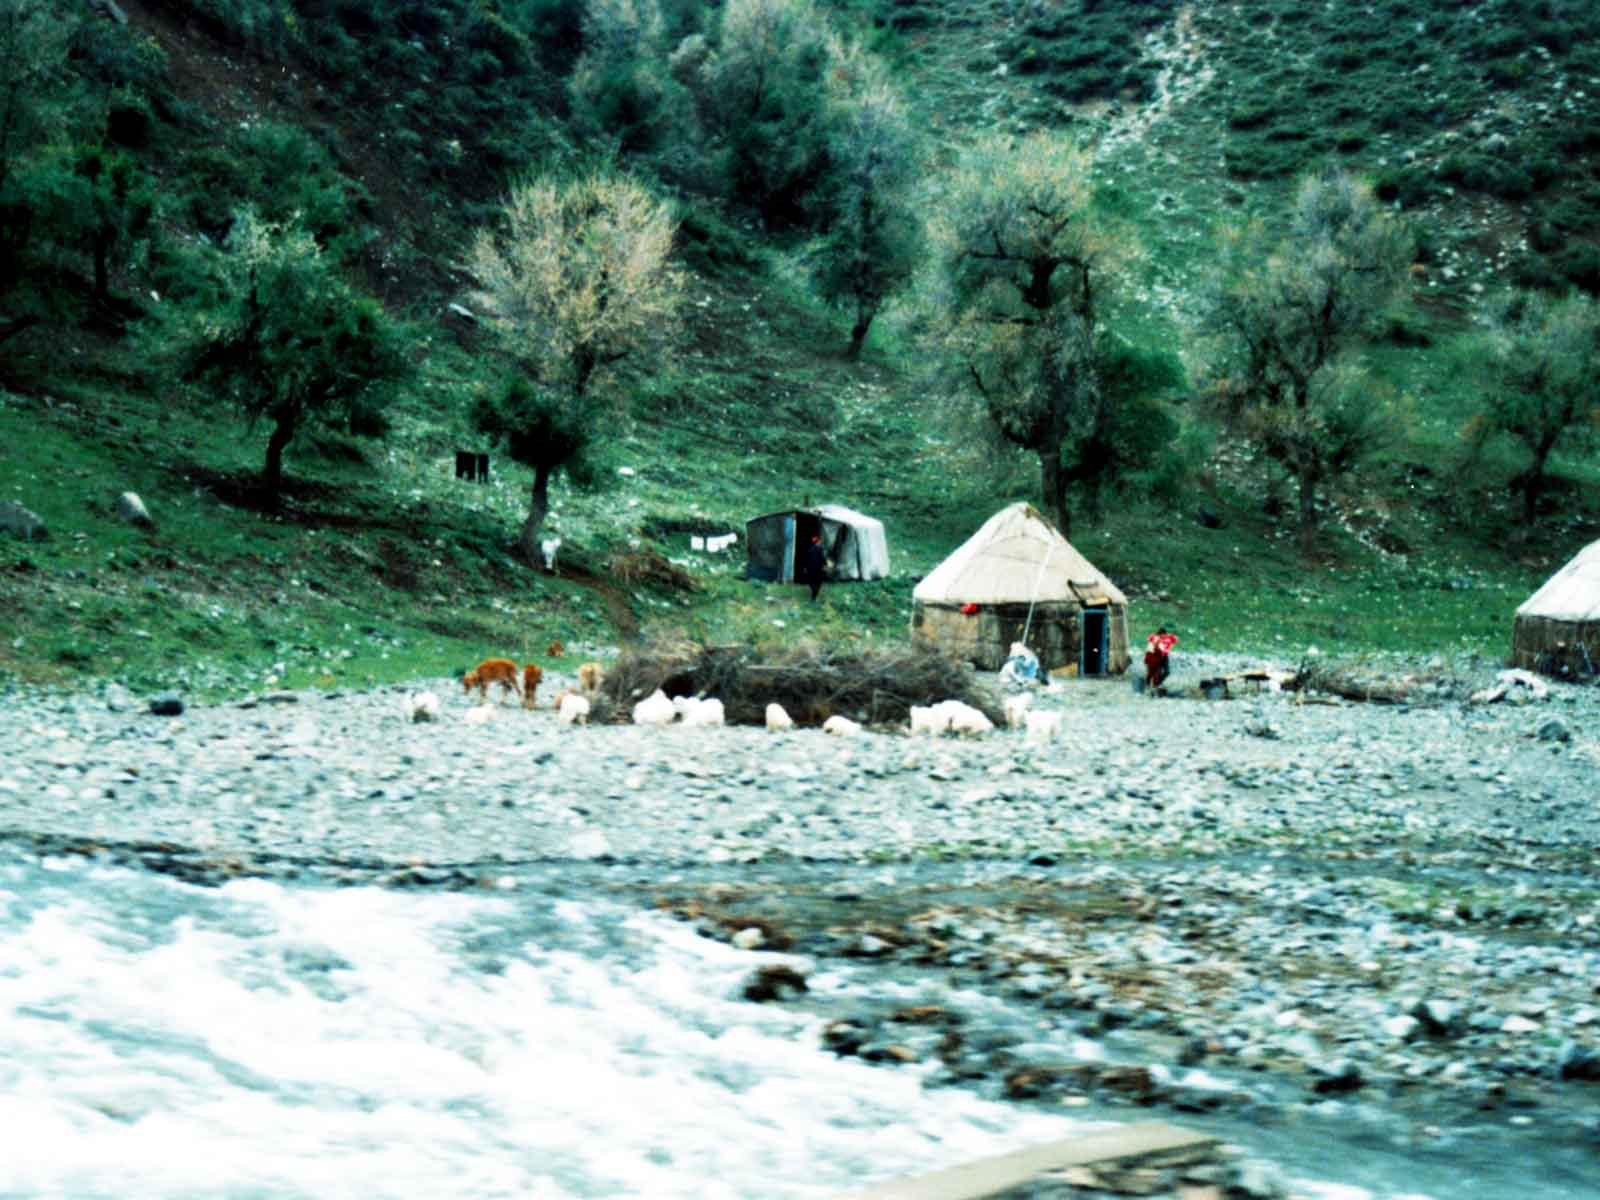 Kazakh yurts - Tianshan - Heavenly Mountains - Urumqi China - 1995 University of Hawaii - Silk Road Study Tour - Steven Andrew Martin